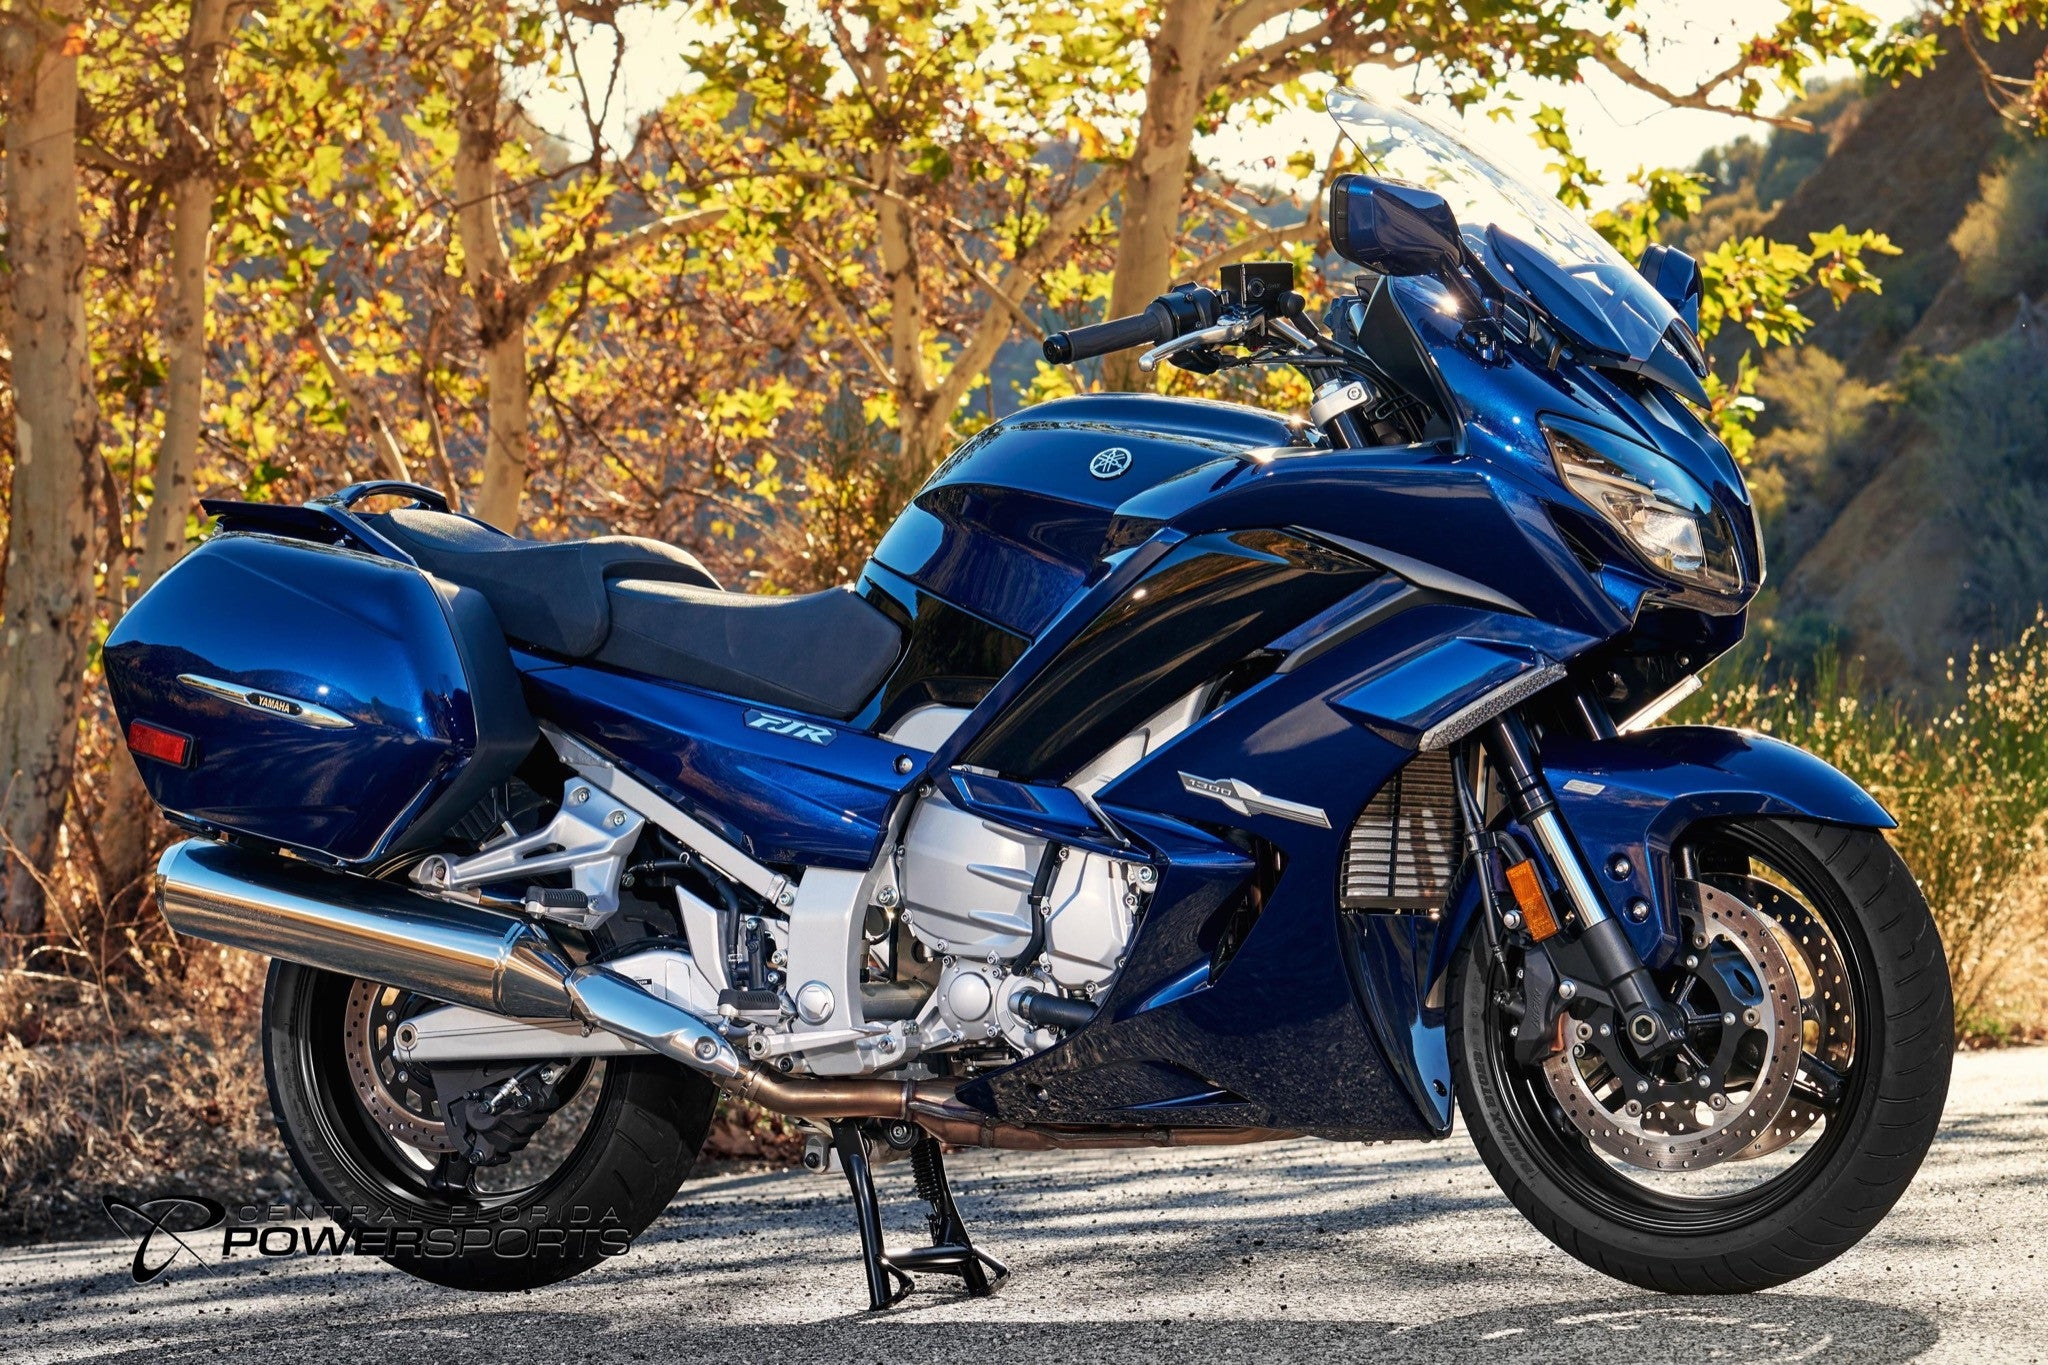 2017 yamaha fjr1300 es motorcycle central florida. Black Bedroom Furniture Sets. Home Design Ideas